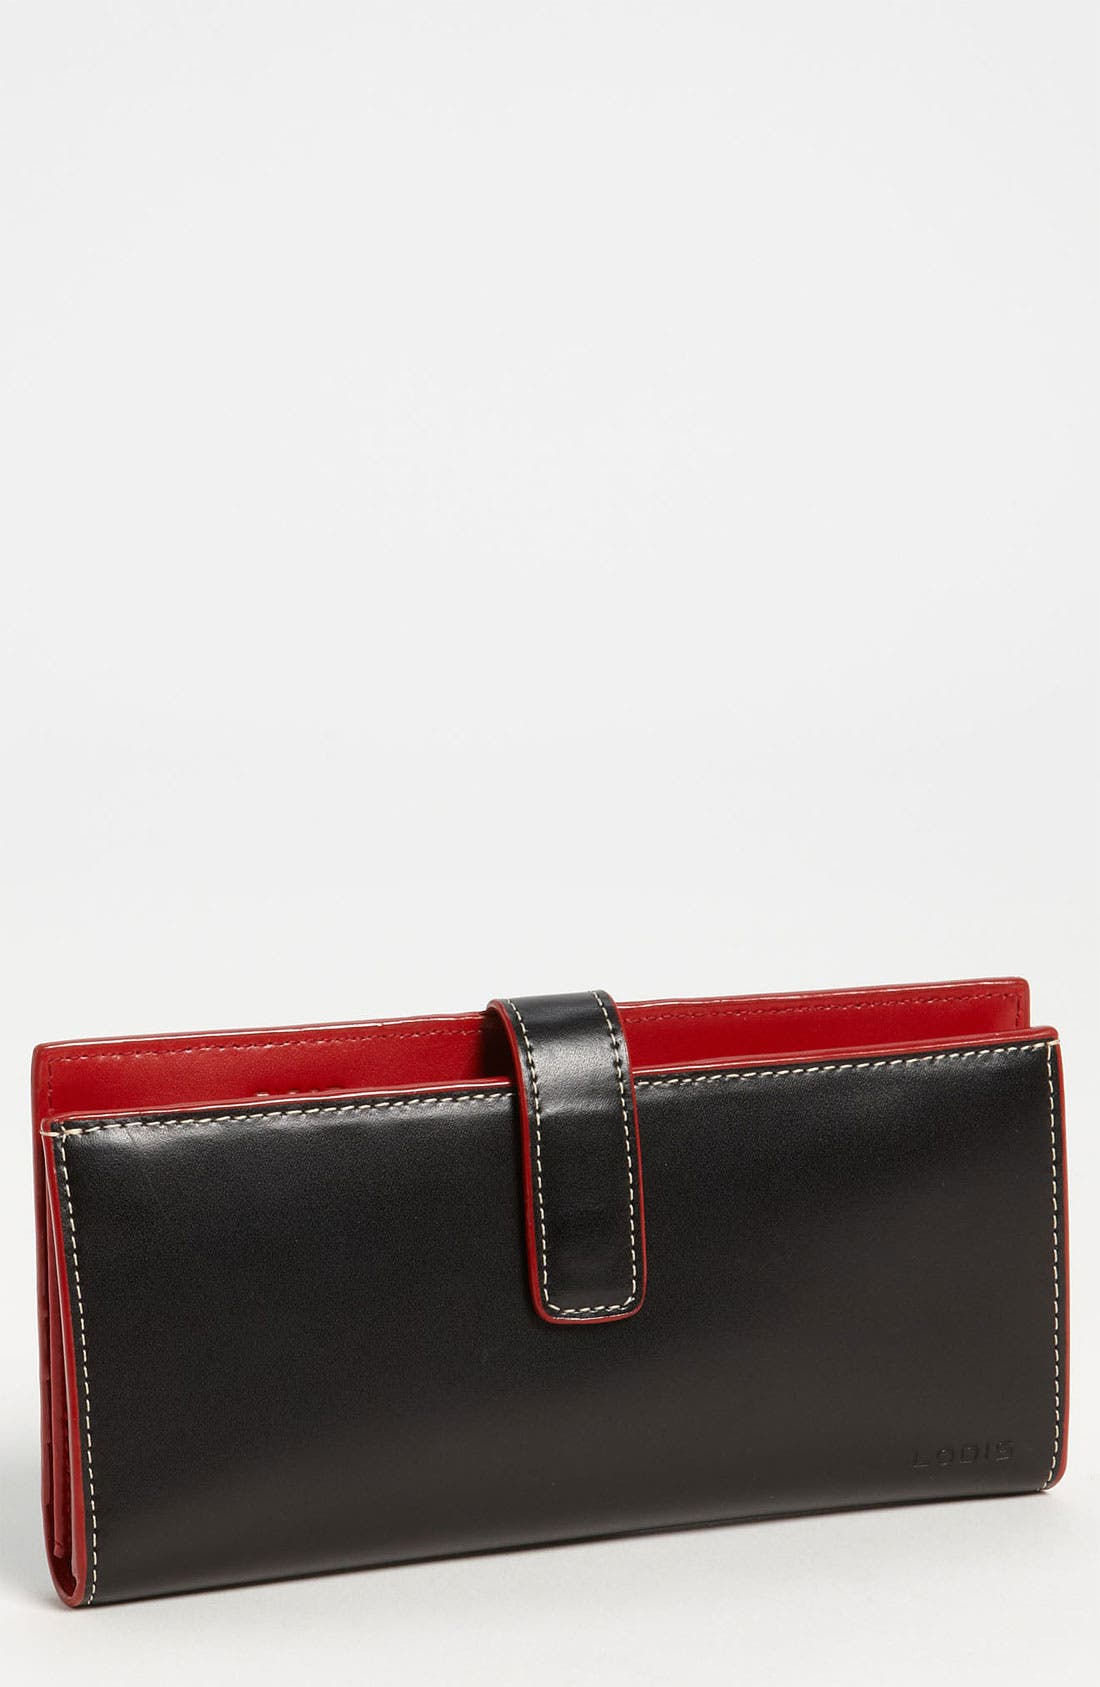 Alternate Image 1 Selected - Lodis 'Audrey' Clutch Wallet